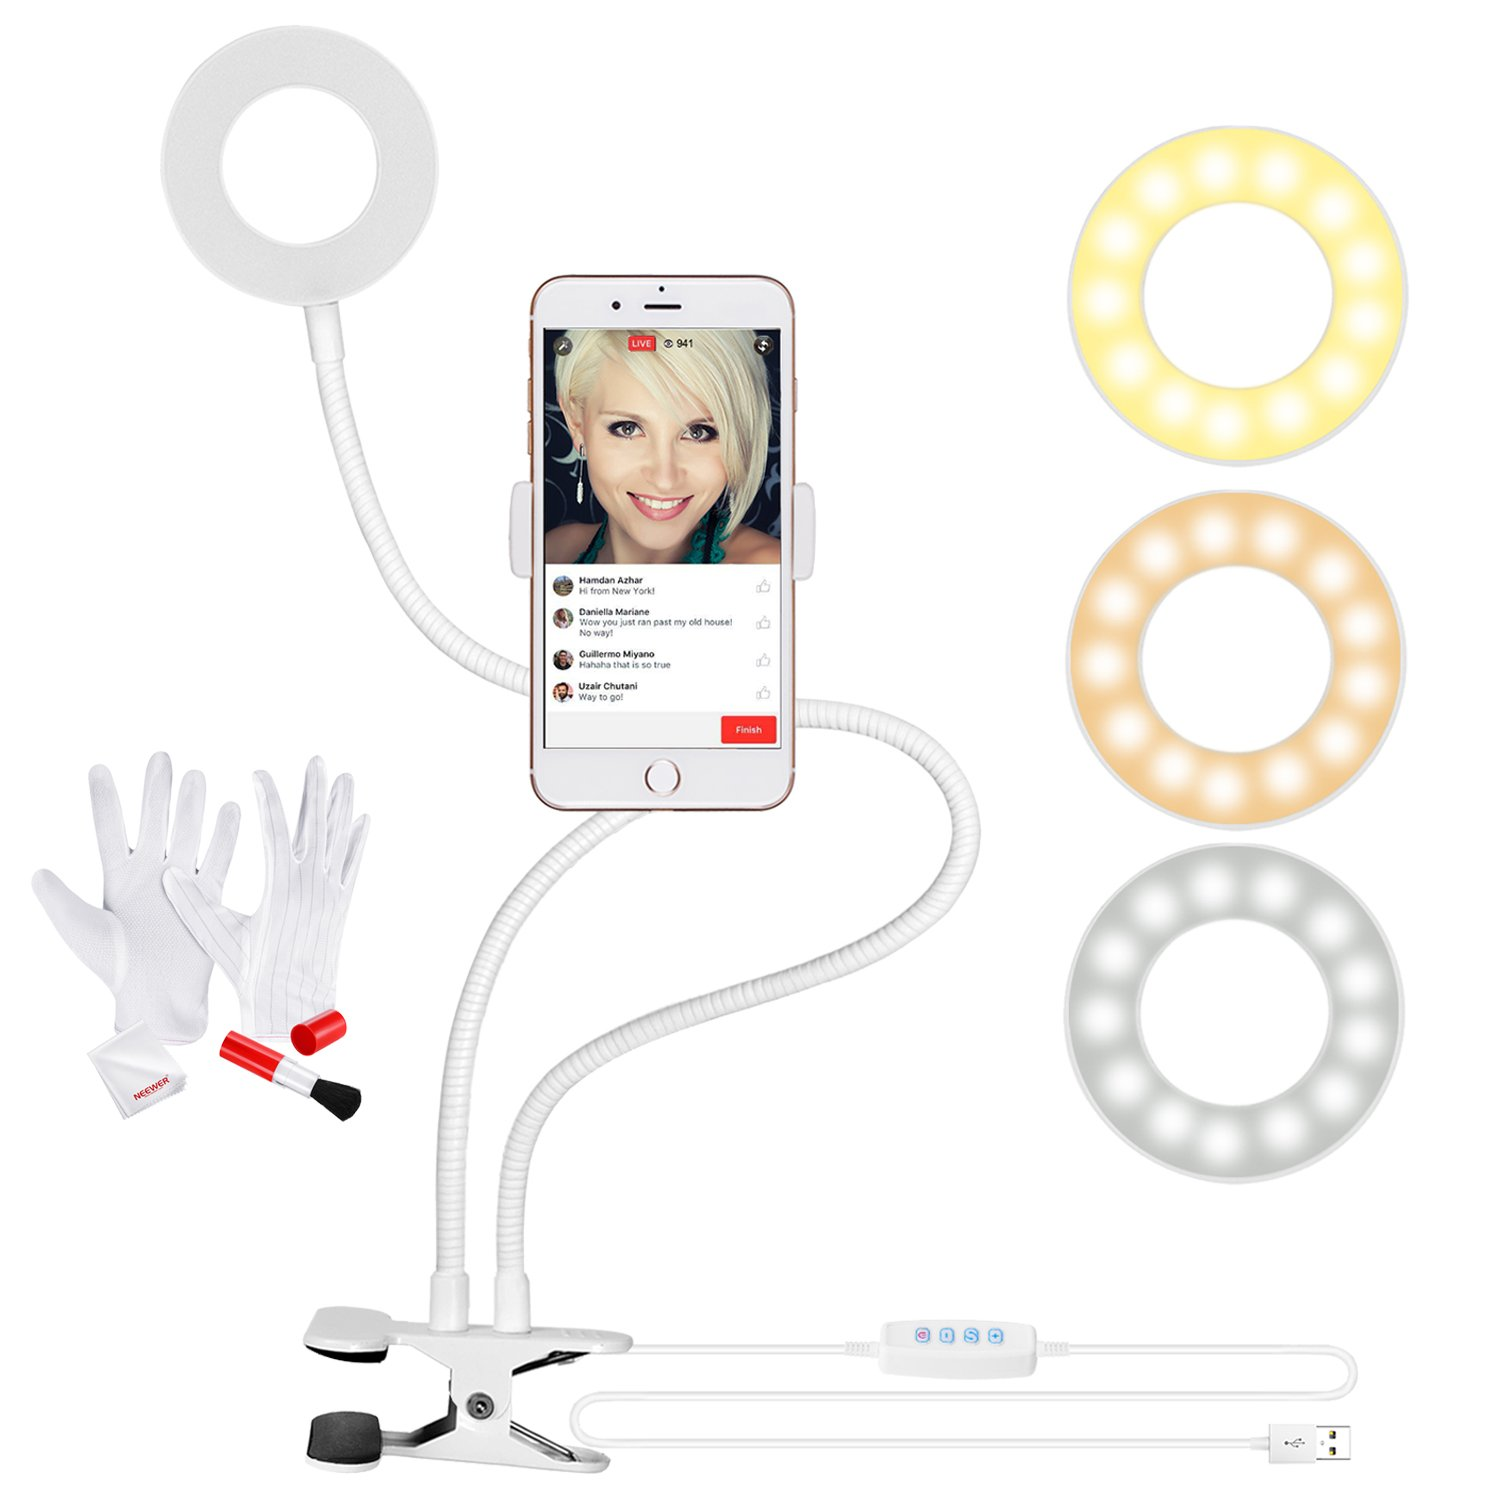 Neewer Clamp-on SelfieRing Light with Cell Phone Holder and 3-in-1 Cleaning Kit for Live Stream, Dimmable (3-Light Mode, 8-Level Brightness) with Lazy Bracket for YouTube, Facebook, iPhone, Samsung(White) 90092712